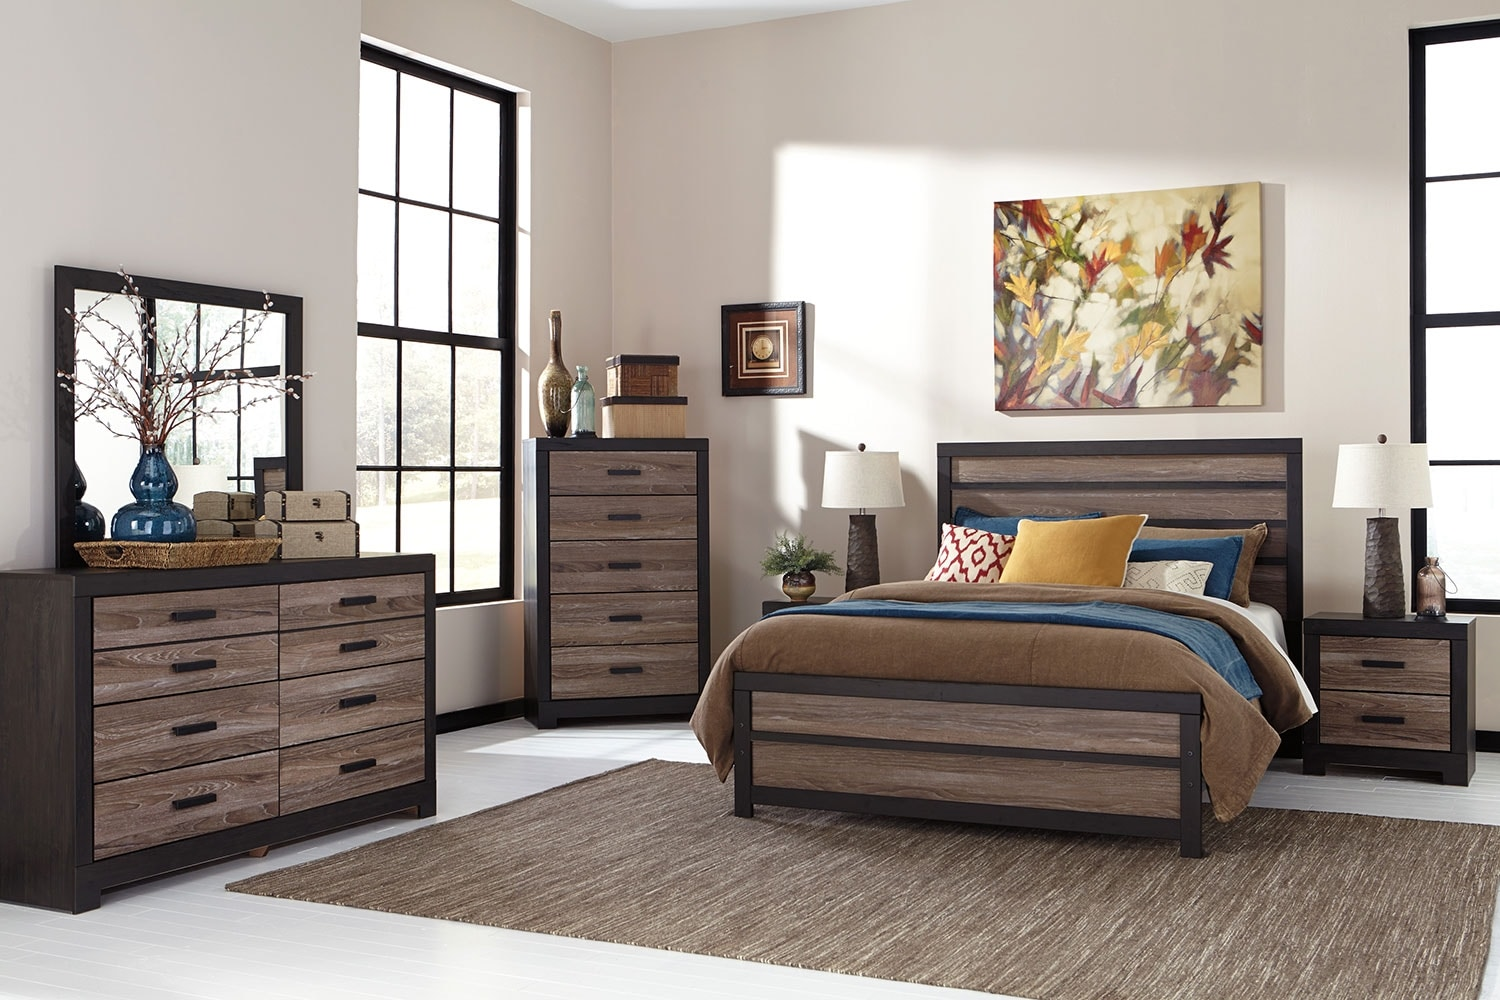 Bedroom Furniture - Harlinton 7-Piece Queen Bedroom Package